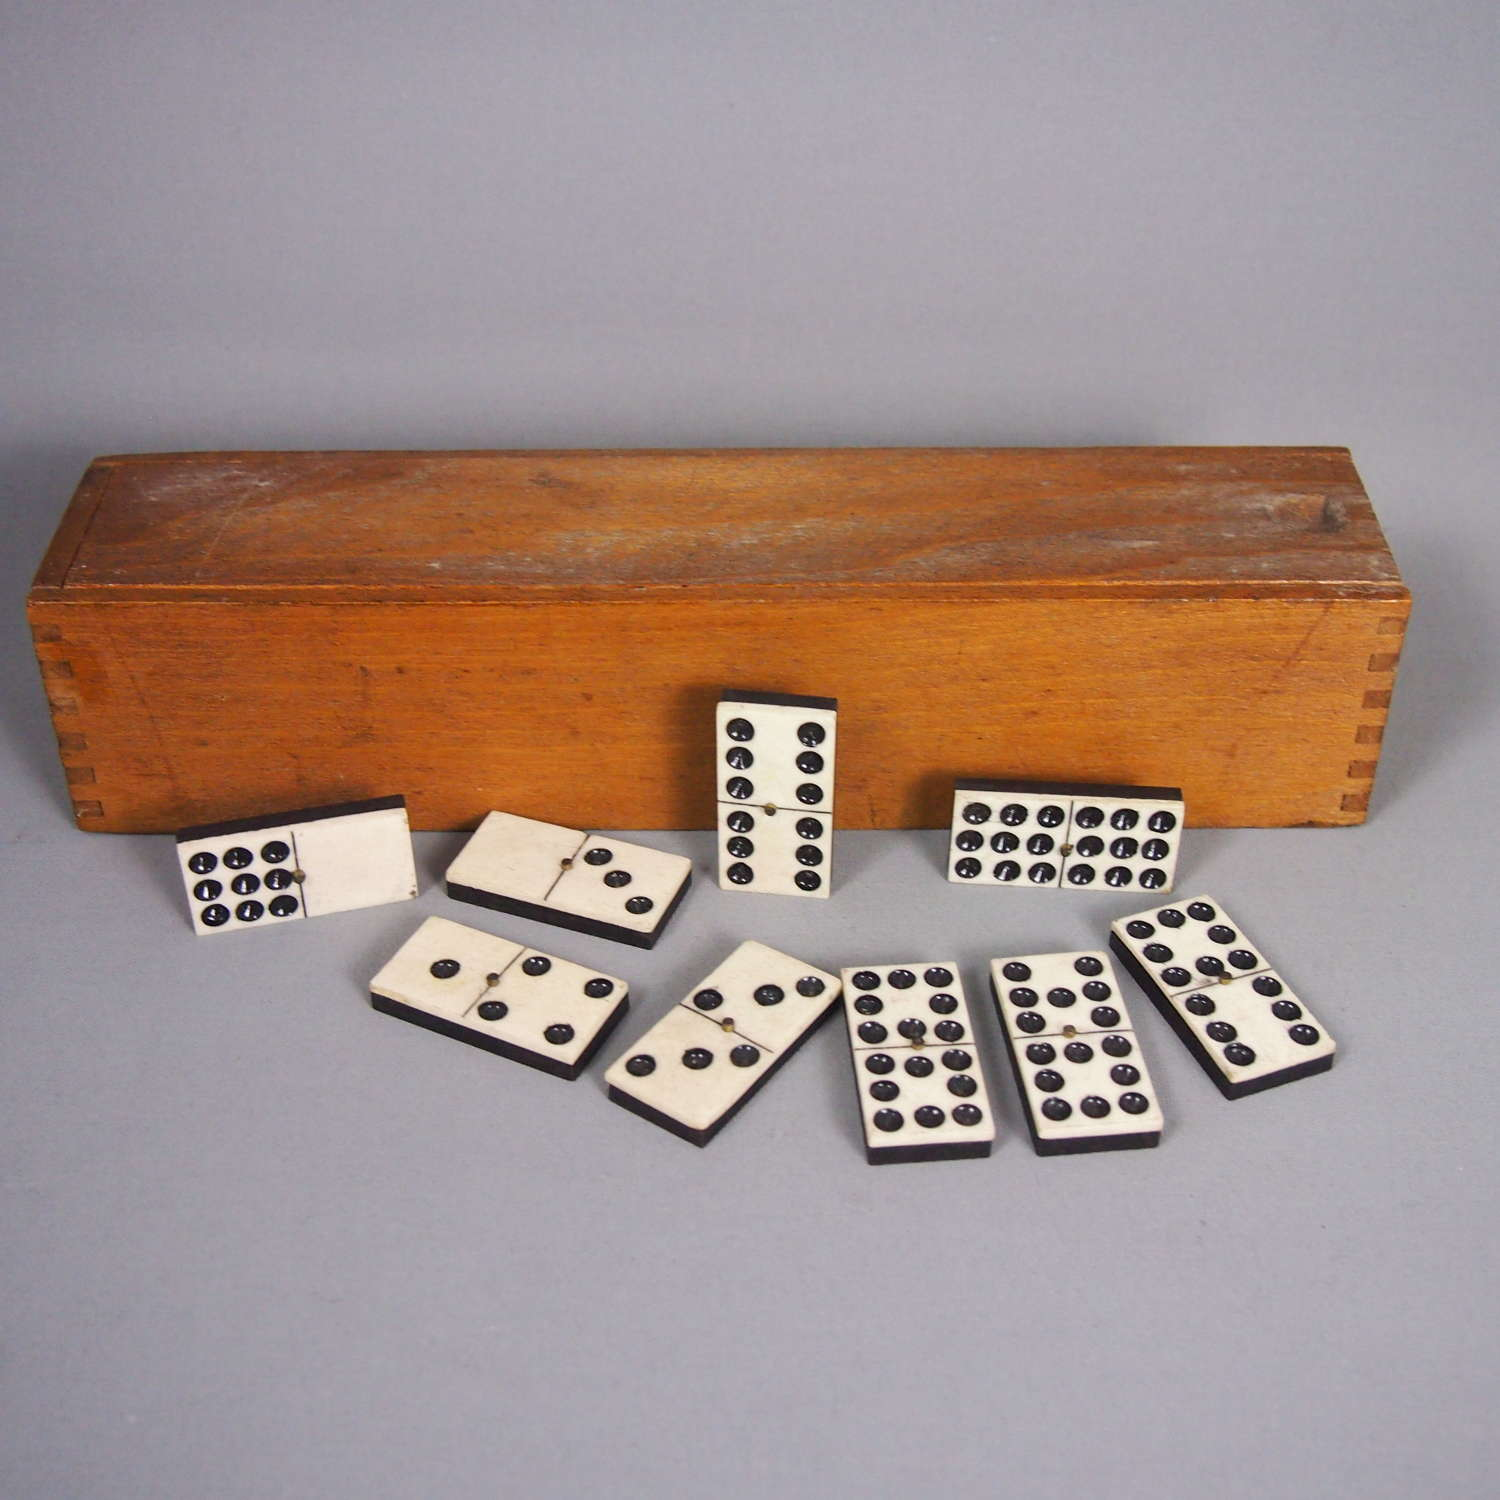 Vintage Unusual Double Nines Domino Set in Wooden Box, W8609